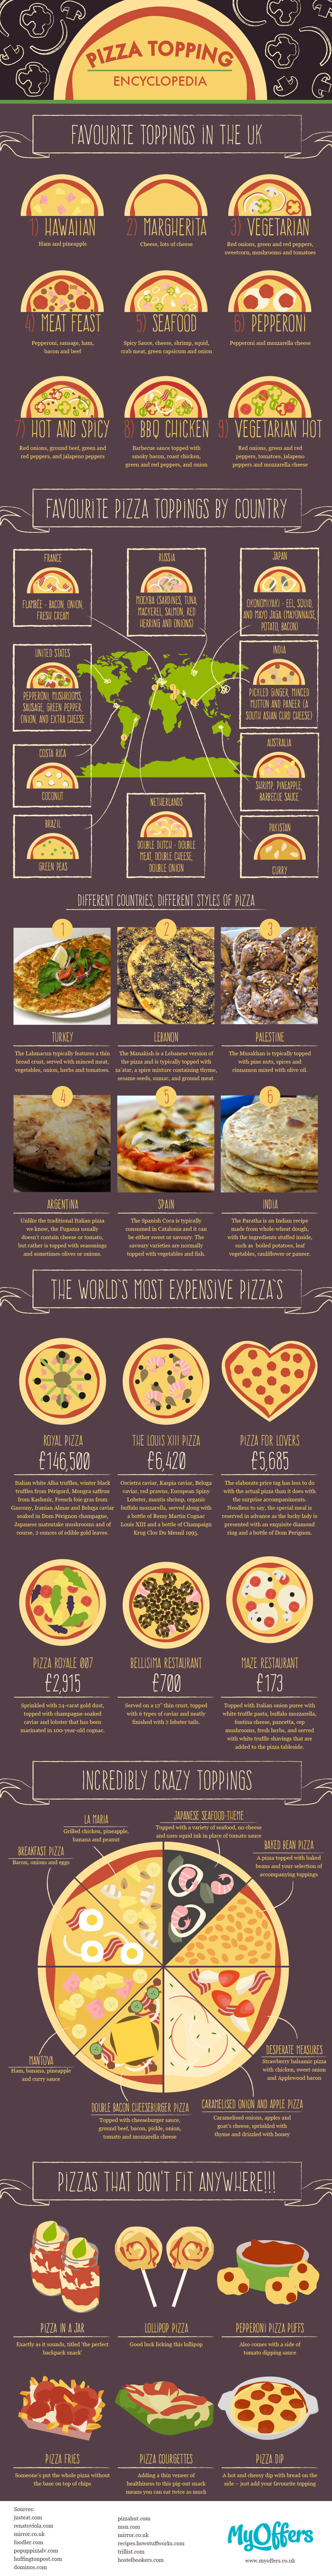 Pizza Topping Encyclopedia - Food Infographic